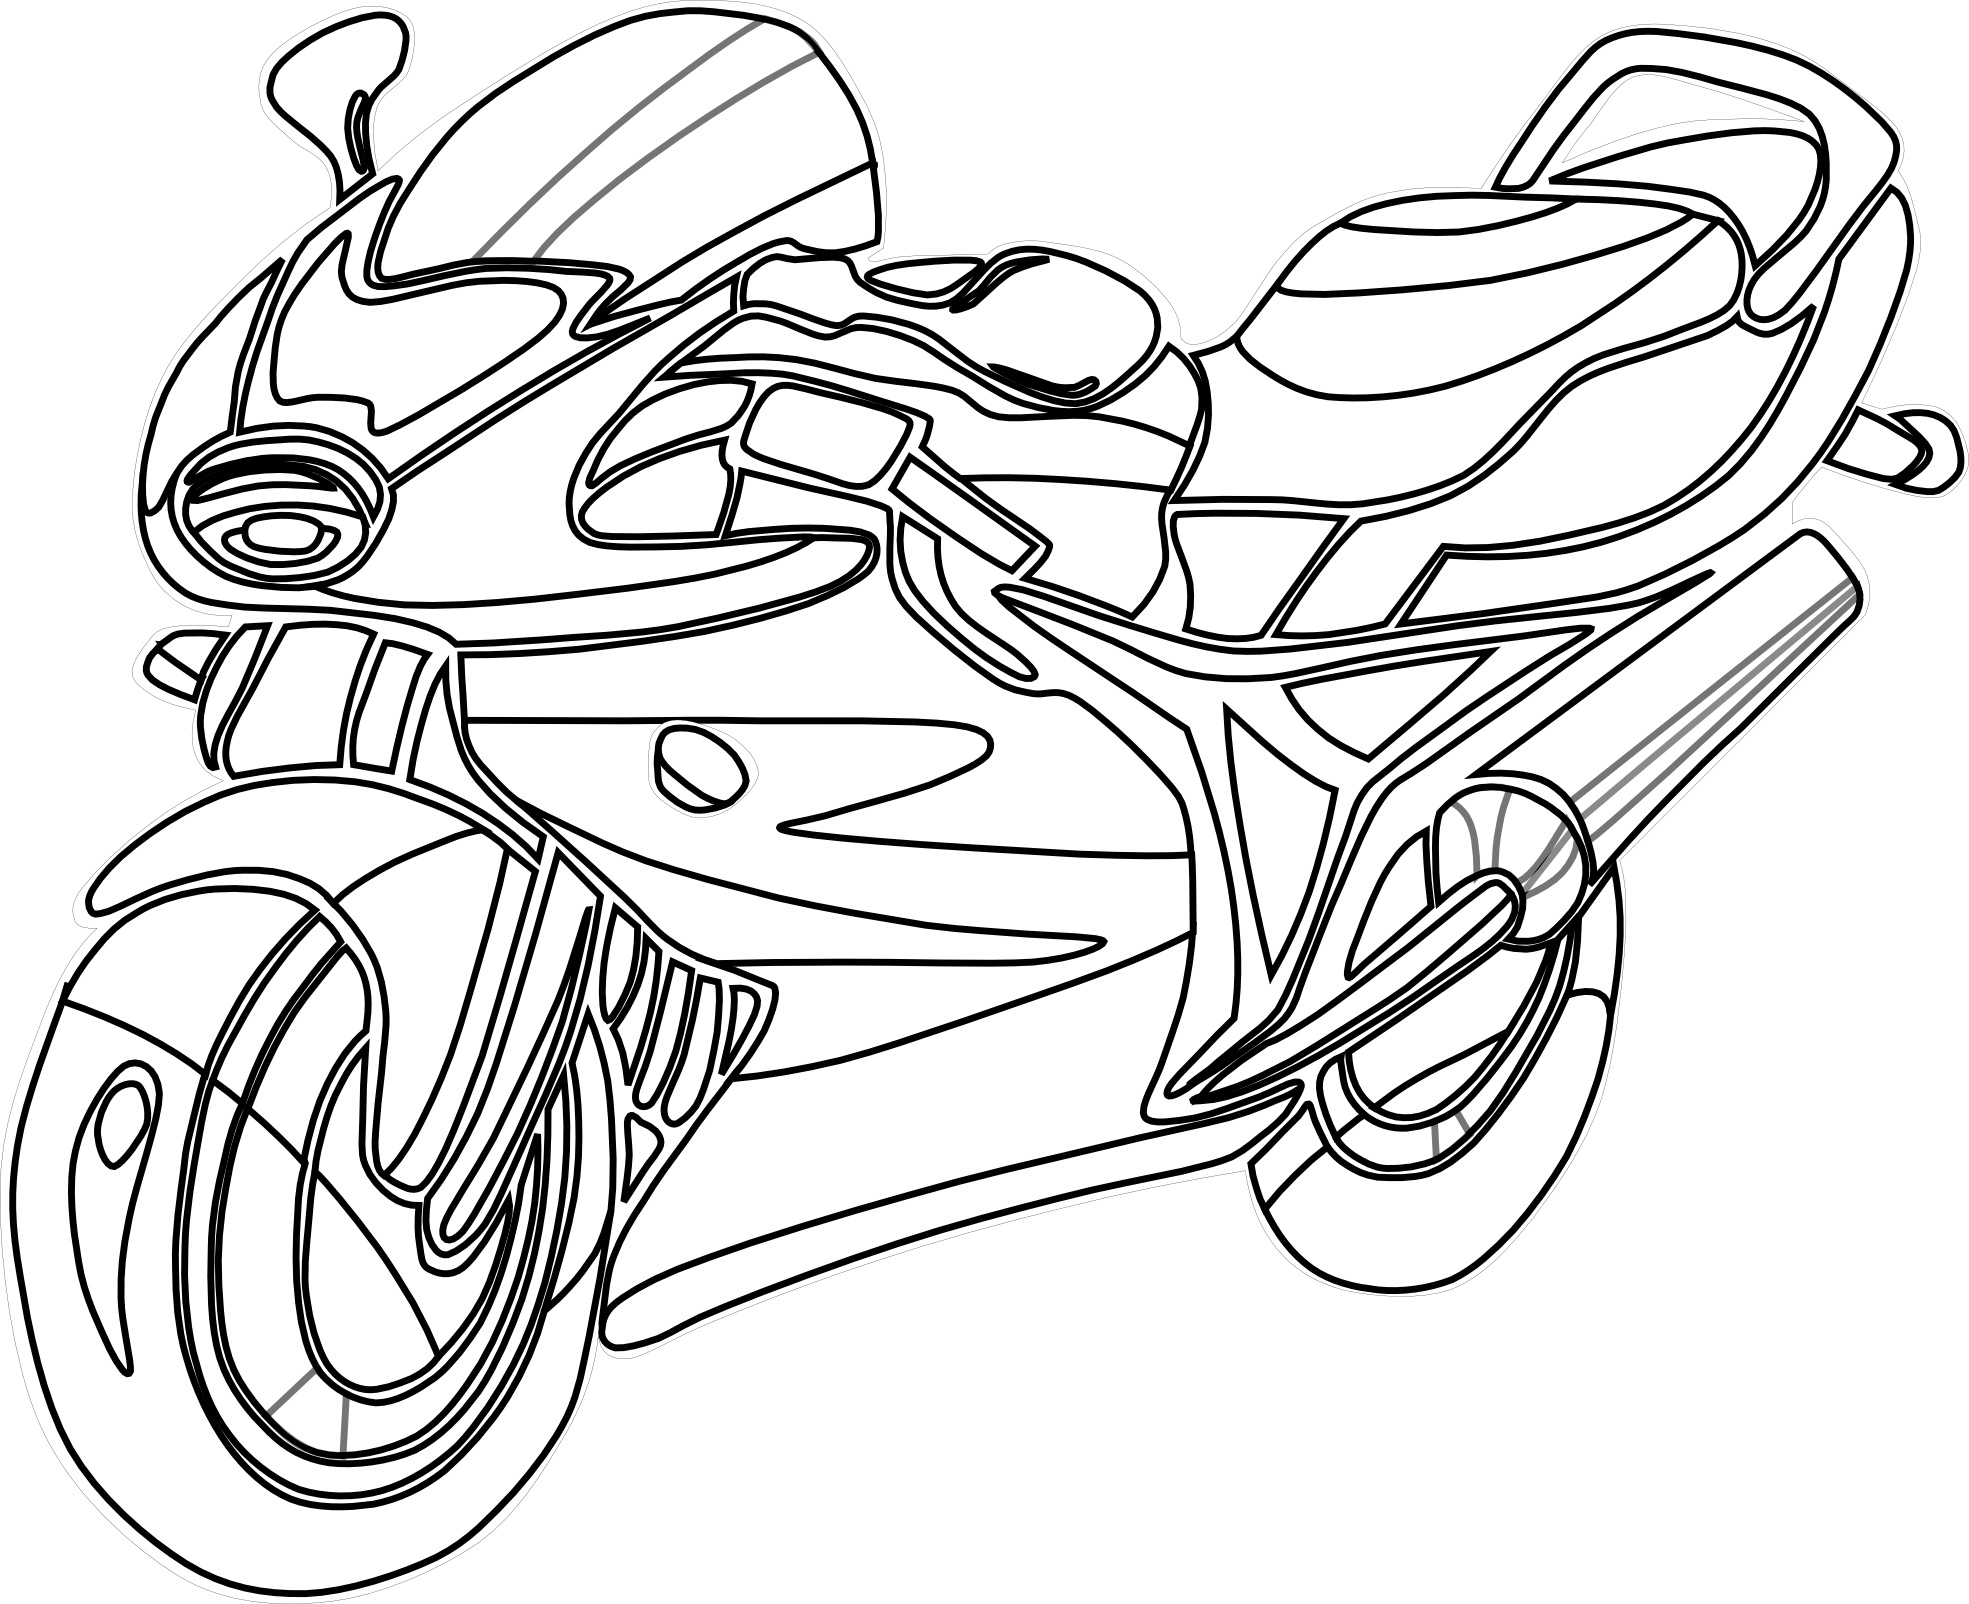 Atv drawing coloring page. Motorcycle outline at getdrawings